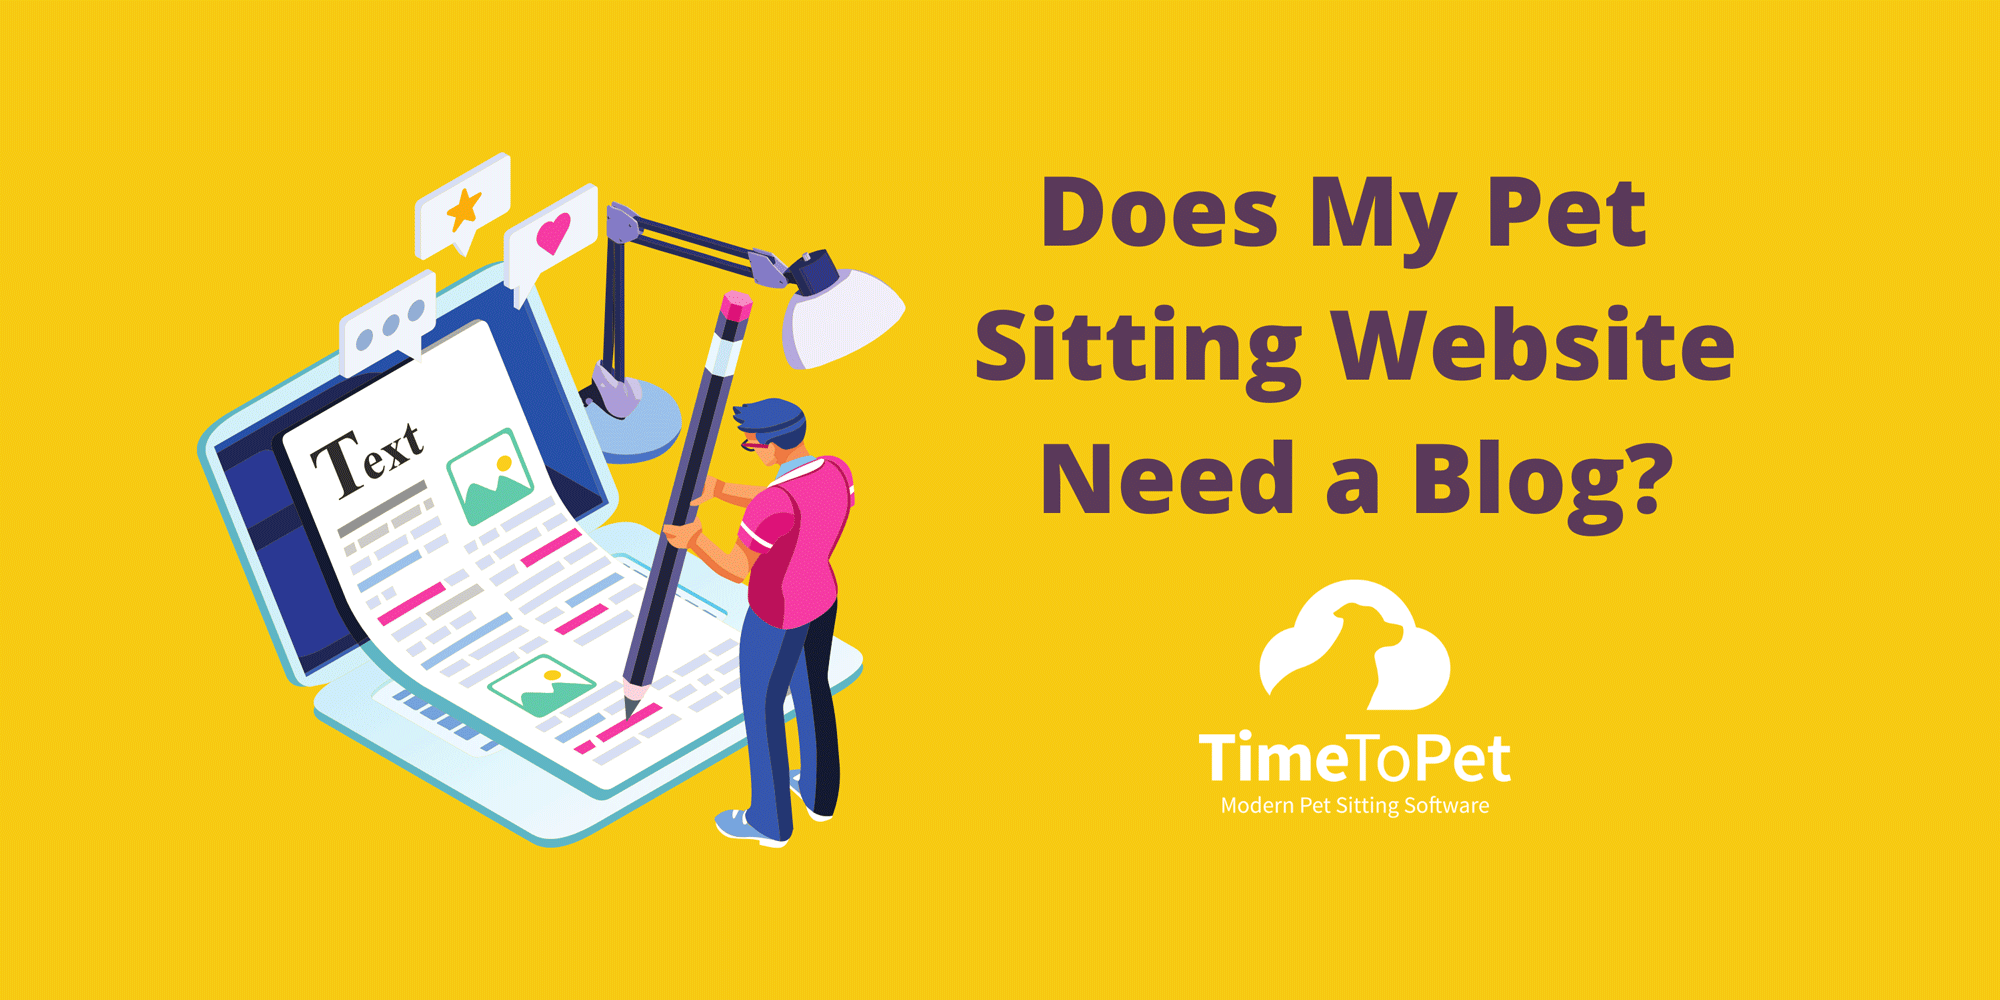 Summary-Does-My-Pet-Sitting-Website-Need-a-Blog_.png